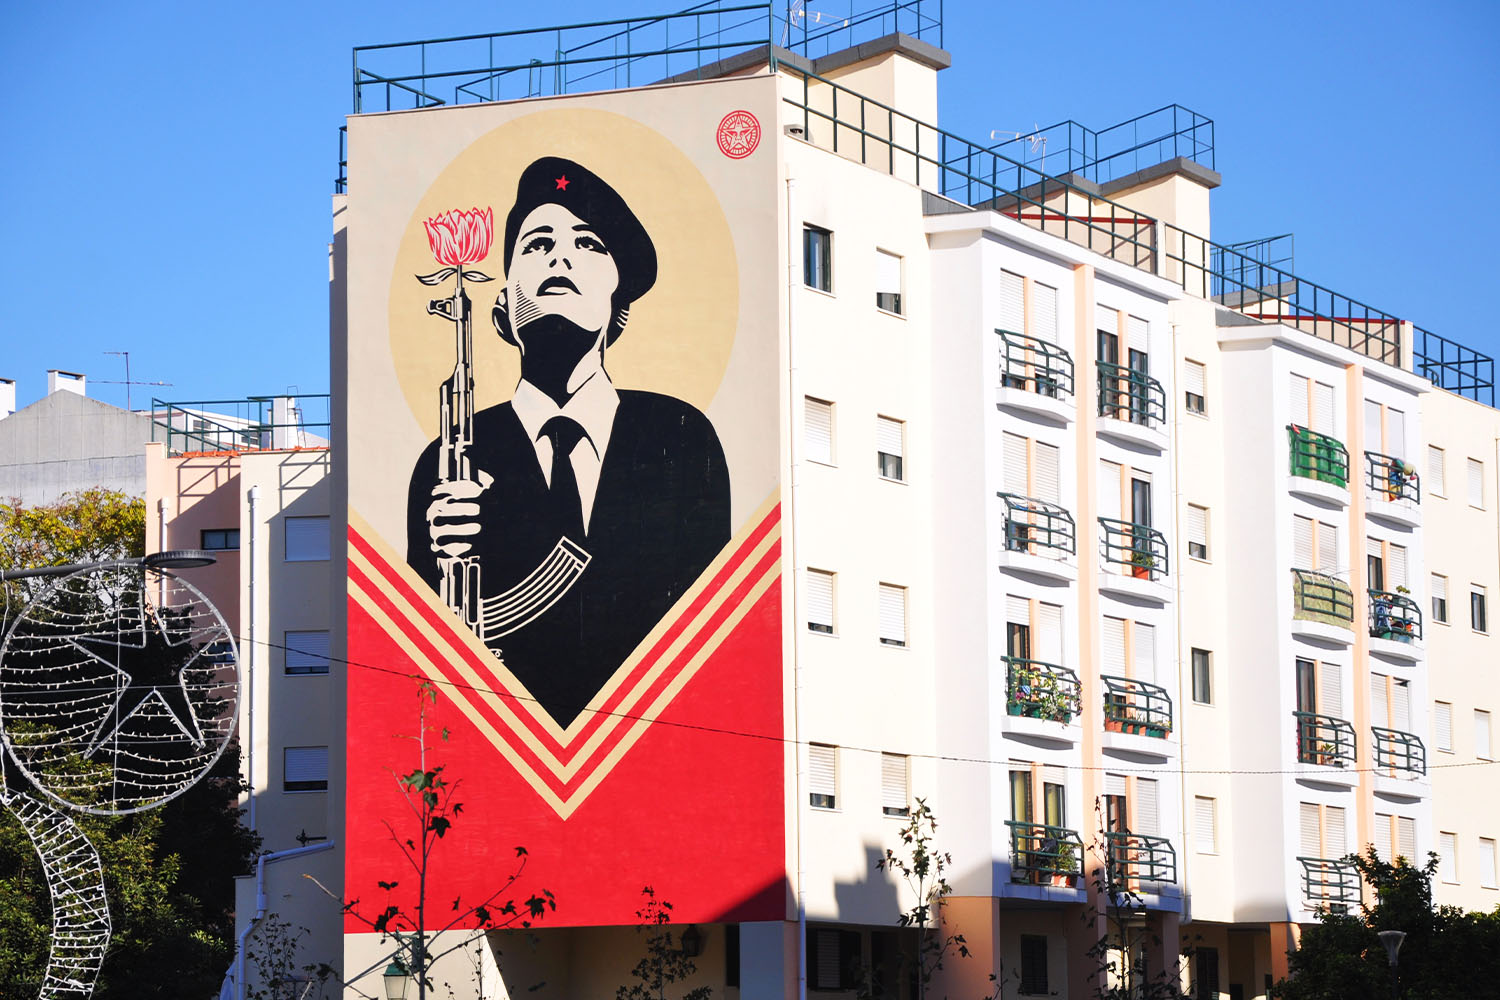 Shepard Fairey's mural of a woman wearing a revolutionary beret and holding a rifle with a carnation in the muzzle in Lisbon, Portugal